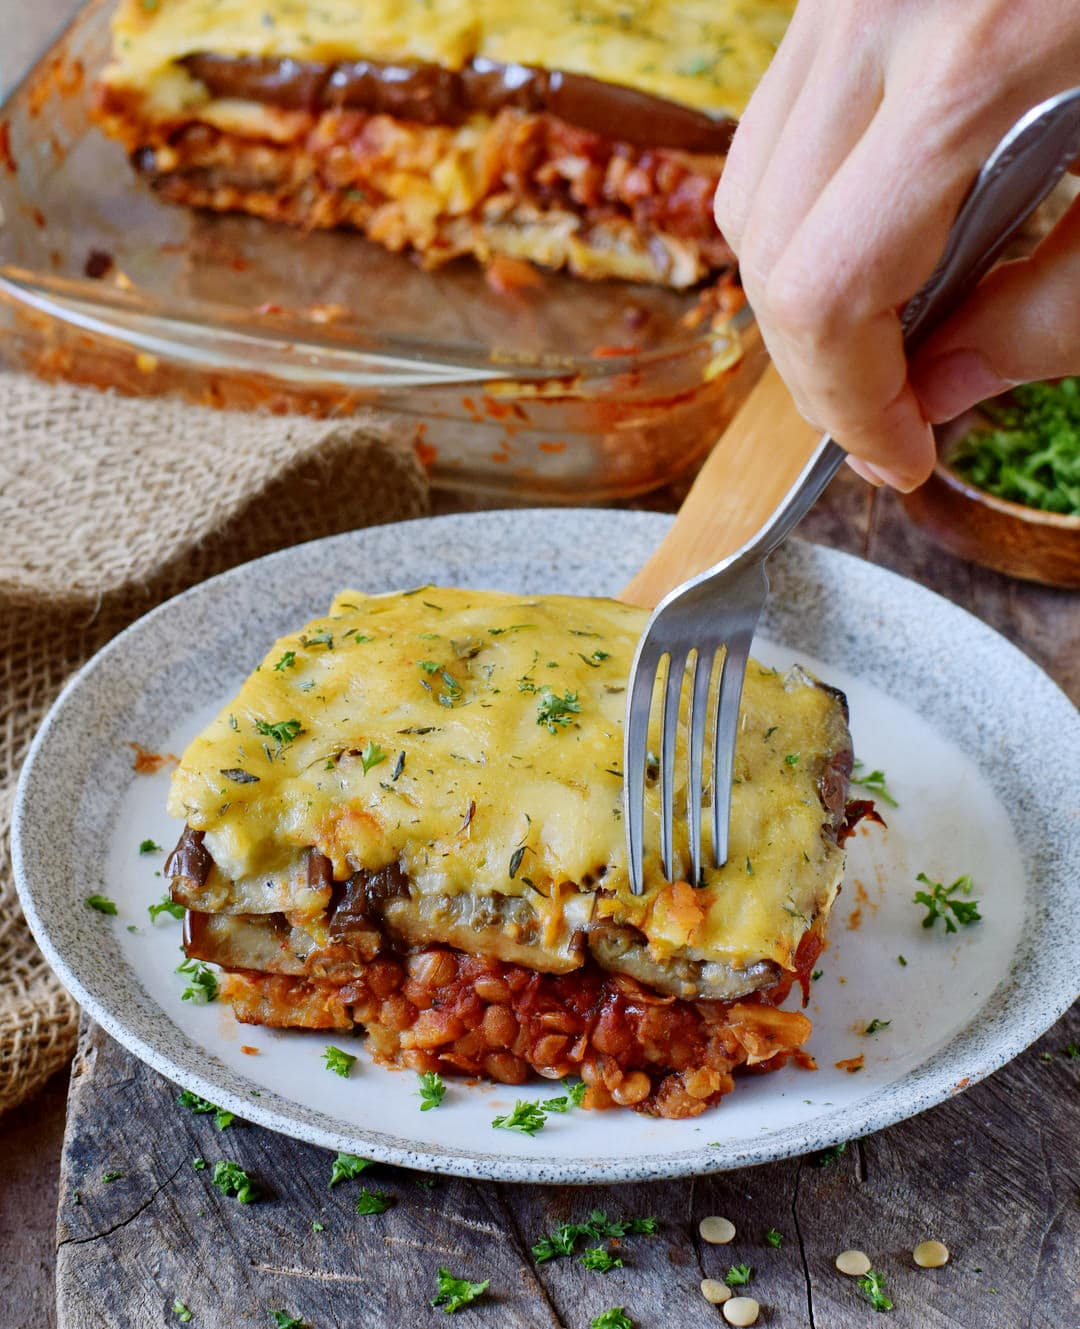 Vegan Moussaka With Lentils Healthy Gluten Free Recipe Elavegan